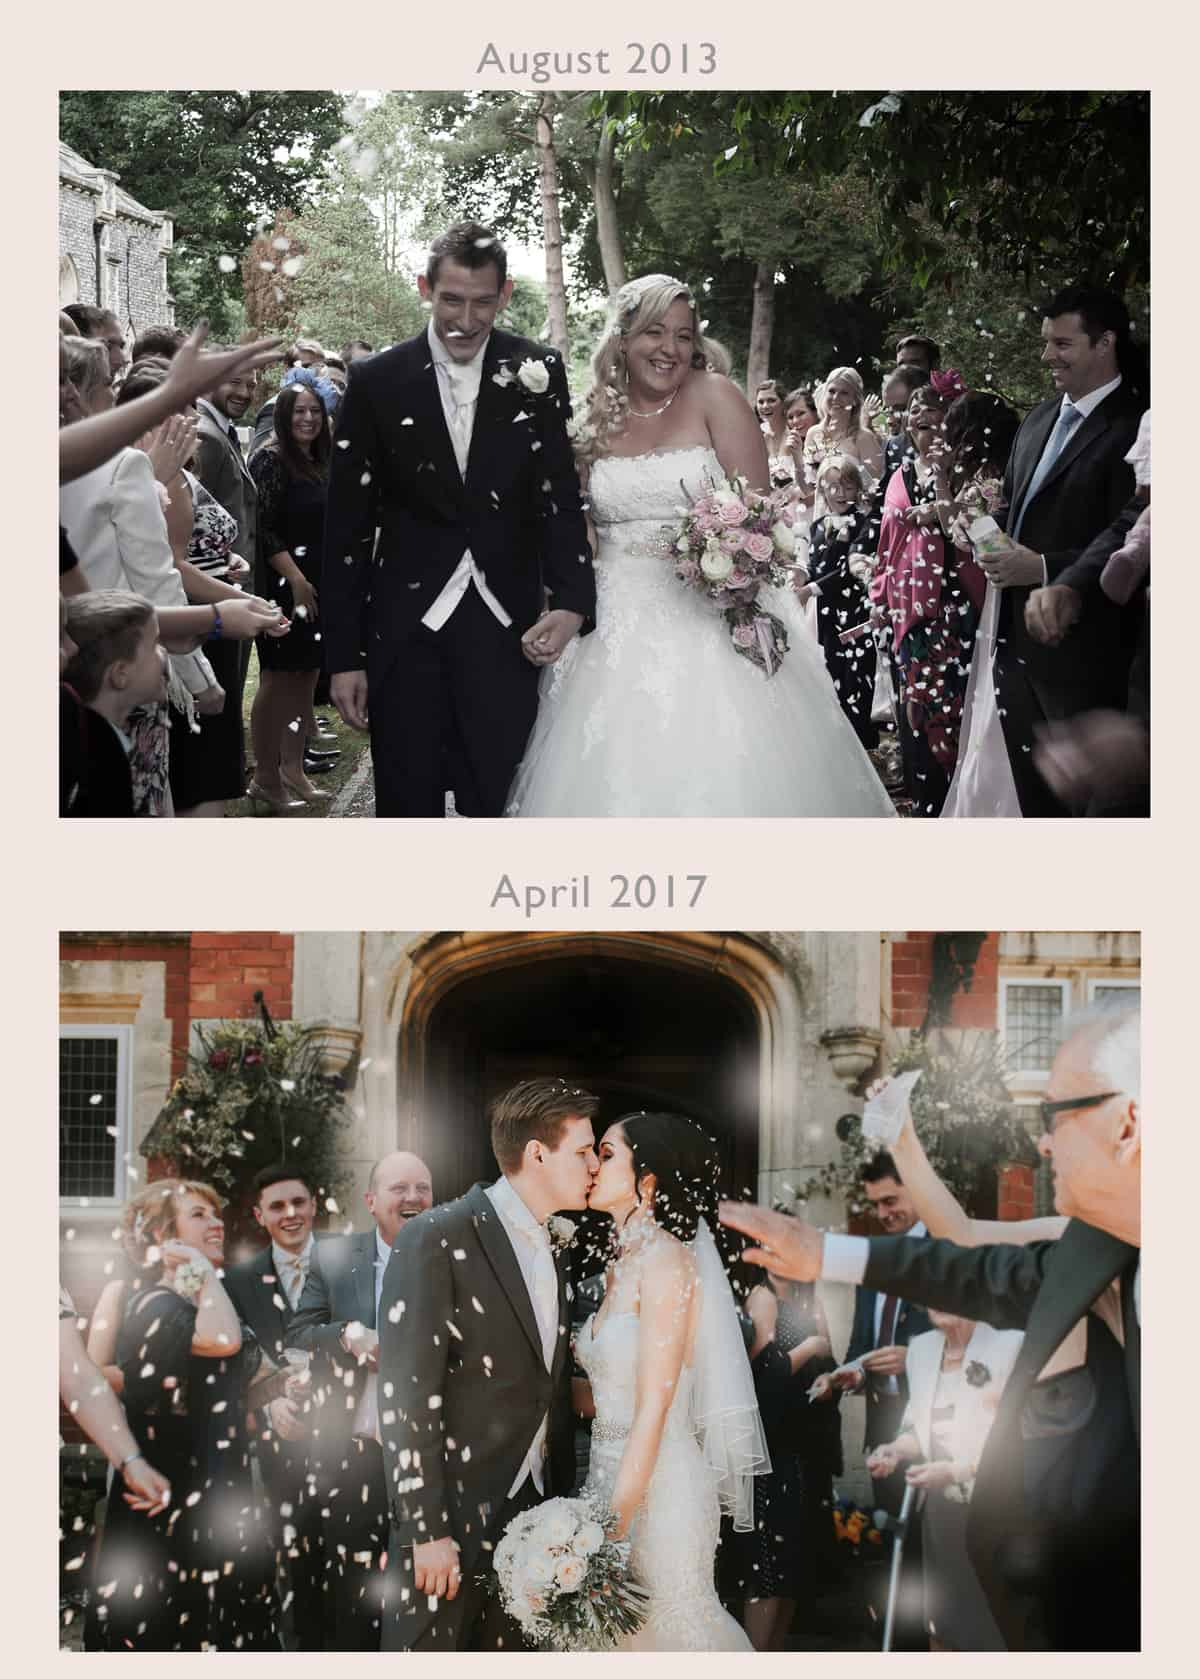 Wedding Photography Tips For Beginners: Progression: Wedding Photography Tips For Beginners